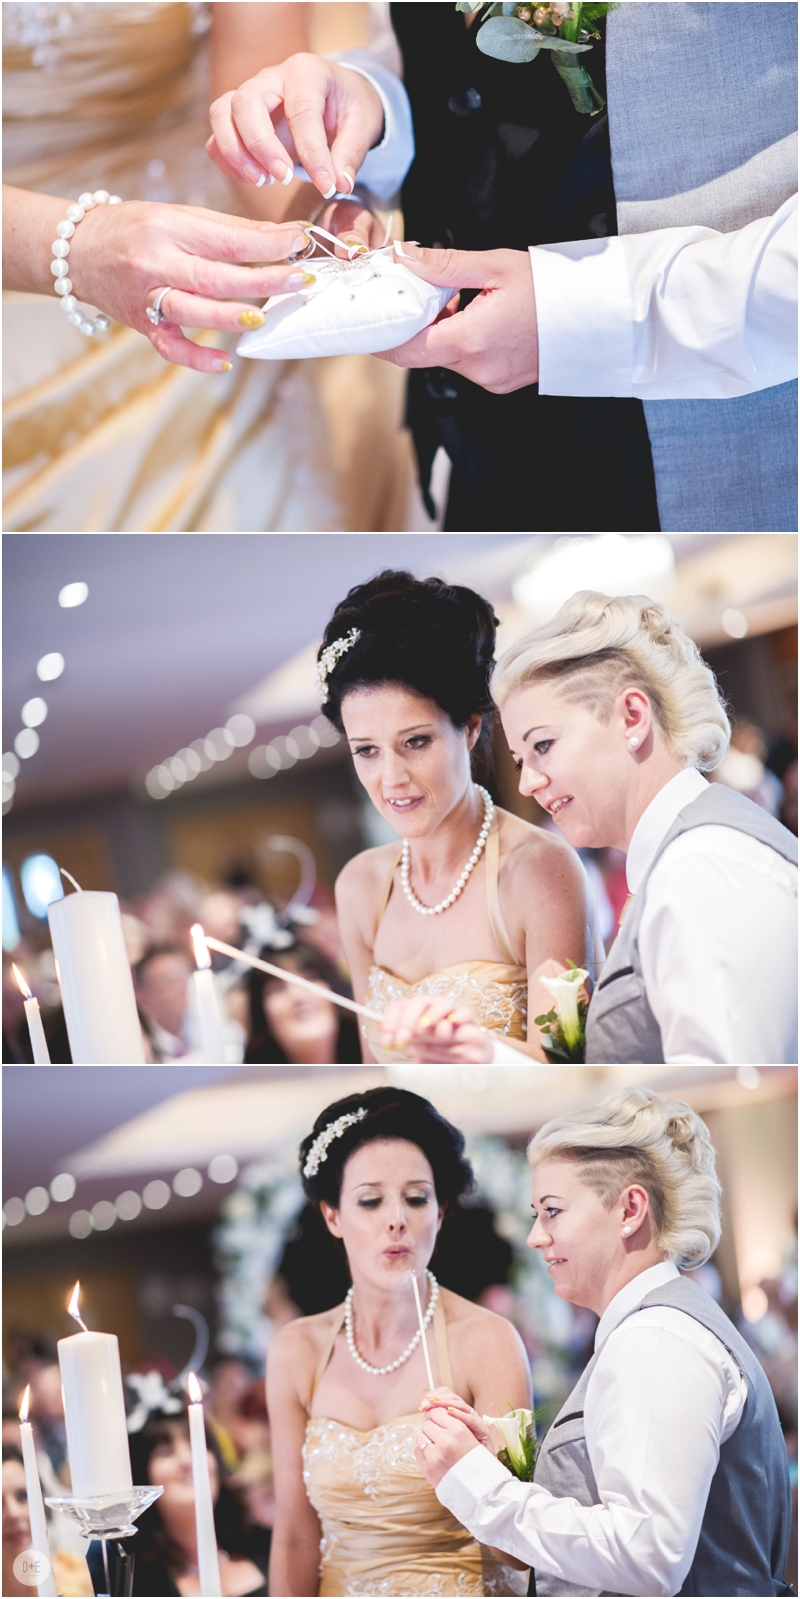 deanella.com-aisling+mary-wedding-103.jpg